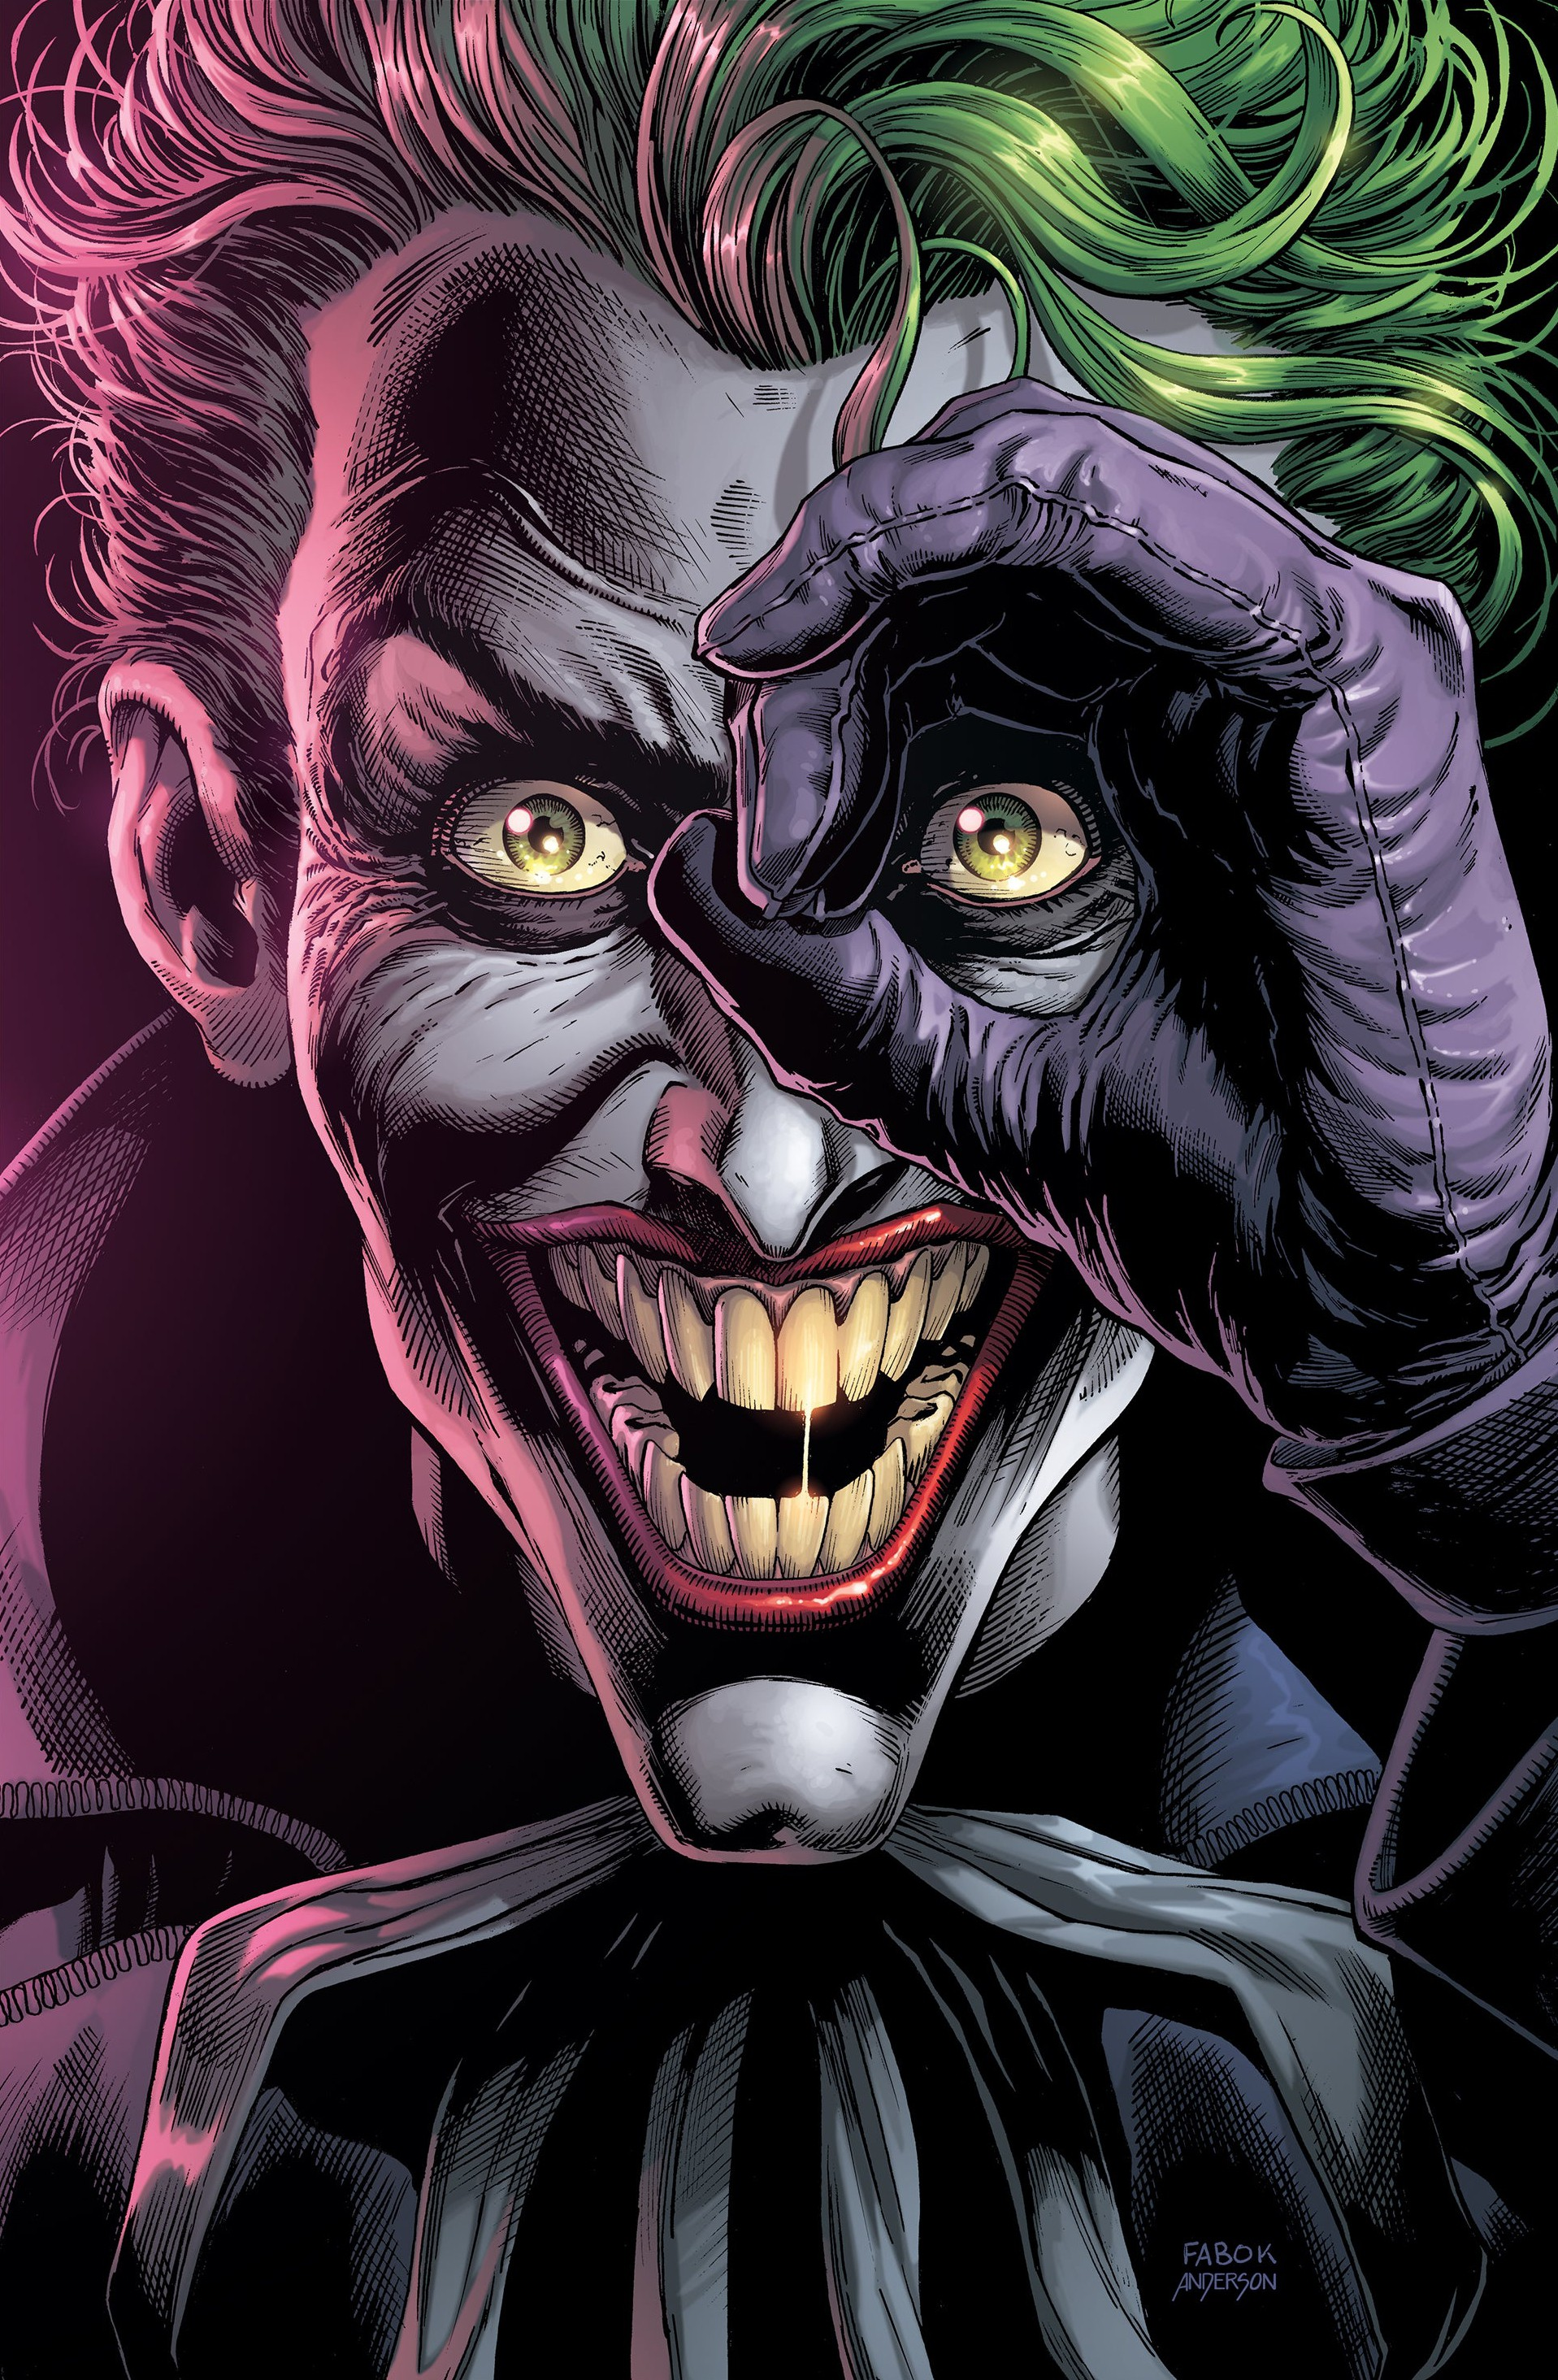 The Joker grins at the viewer, one hand raised in a circle over his eye, on the cover of Batman: Three Jokers #3, DC Comics (2020).